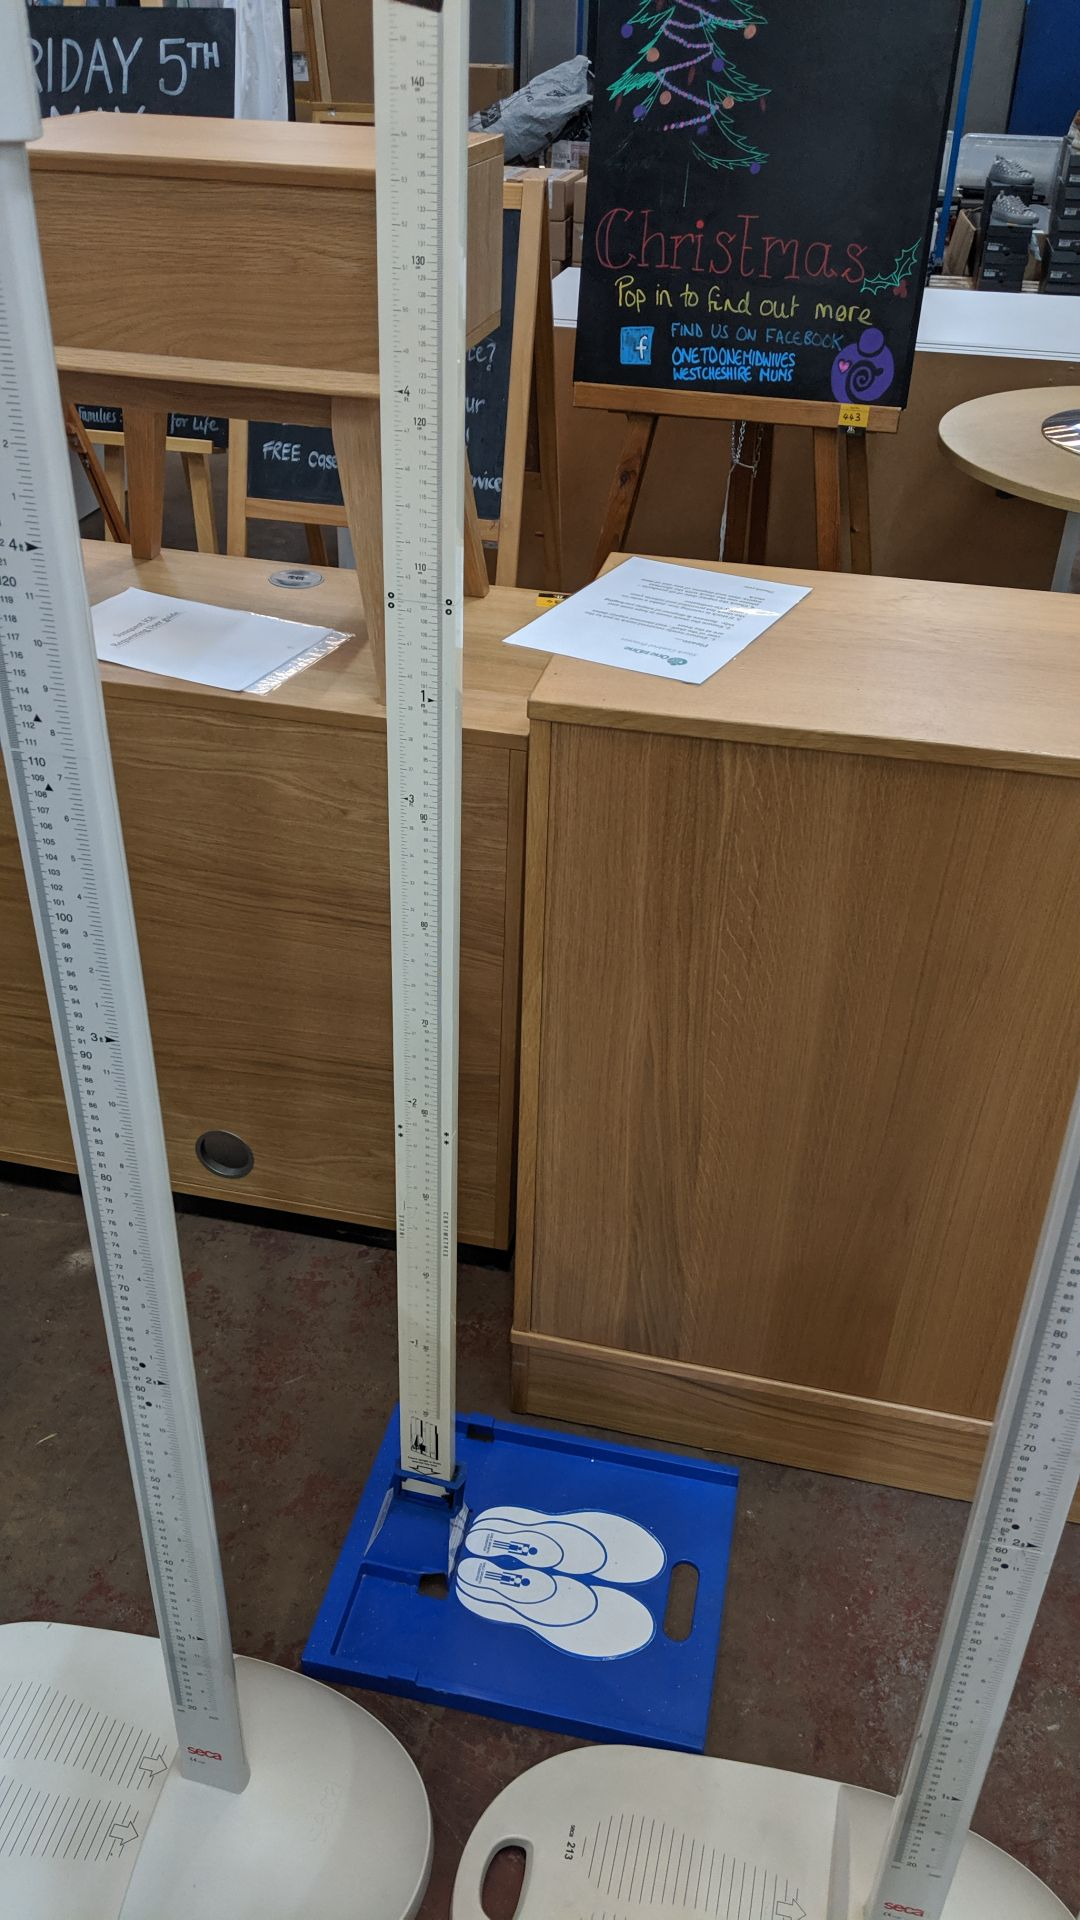 Lot 388 - Leicester height measure. This is one of a large number of lots used/owned by One To One (North